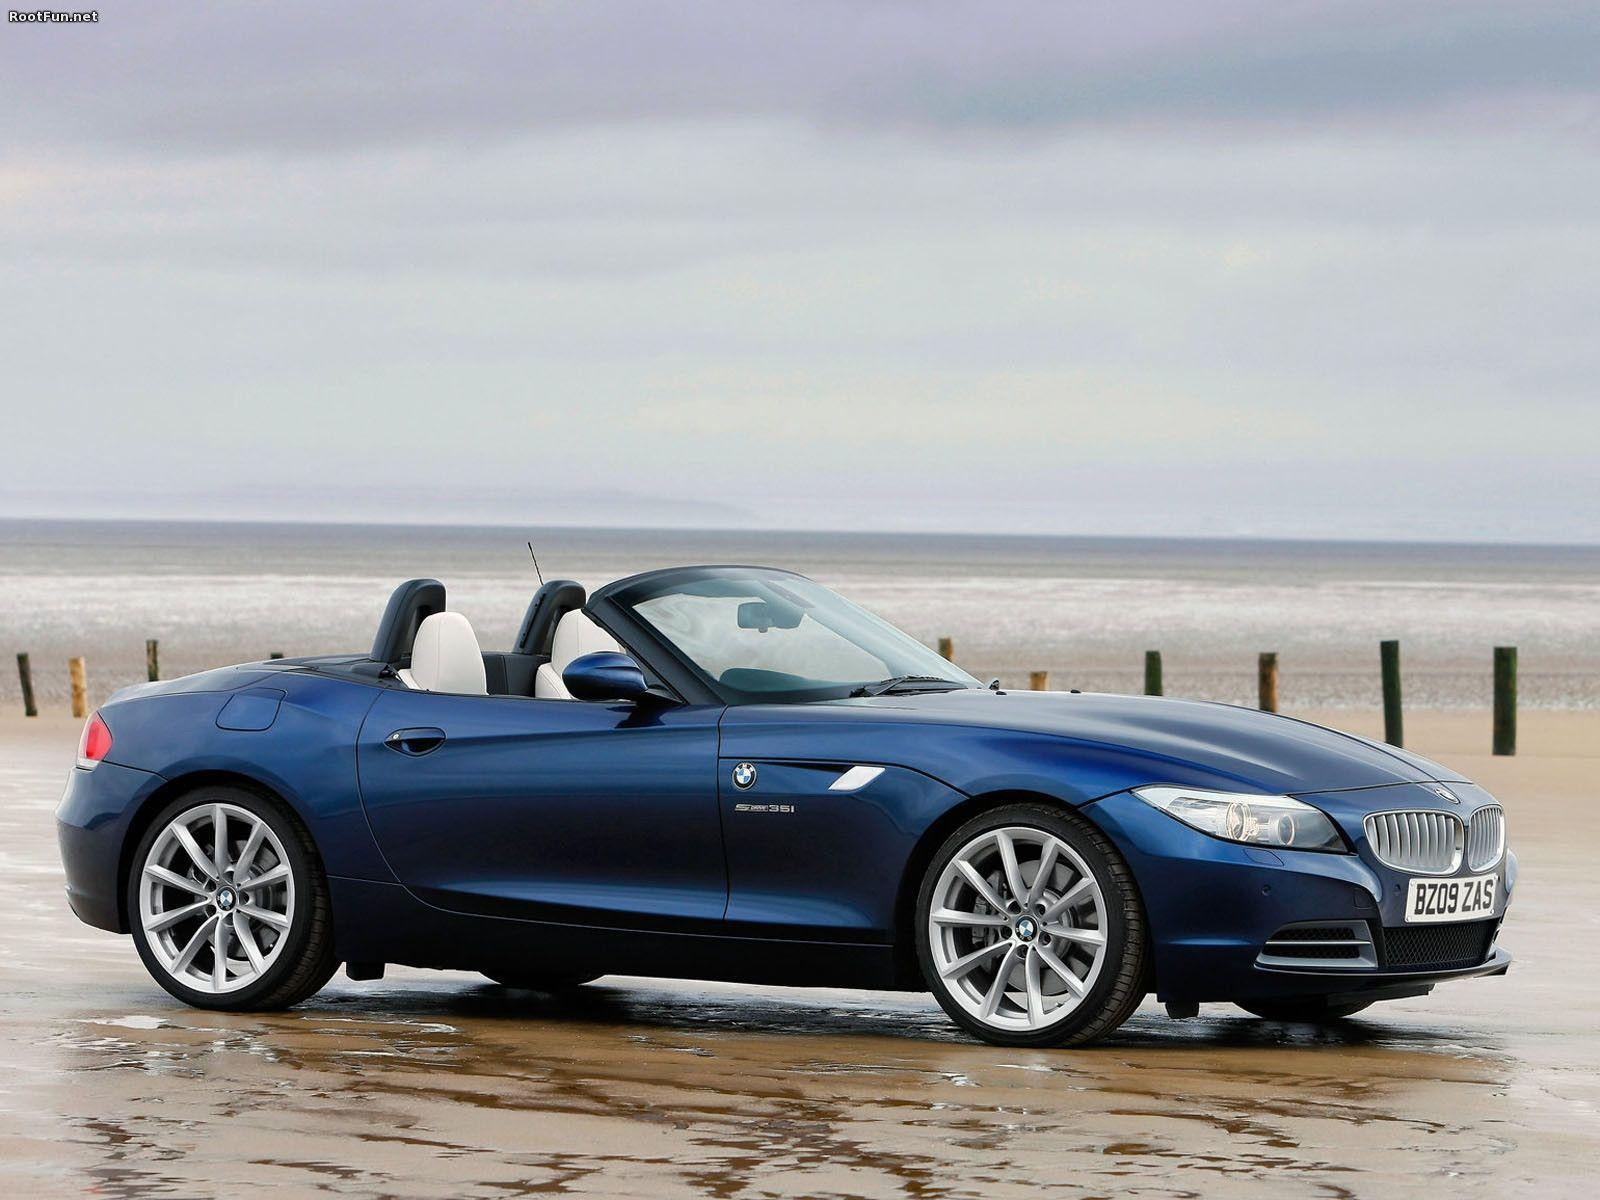 BMW Z4 UK Version 2010 Images